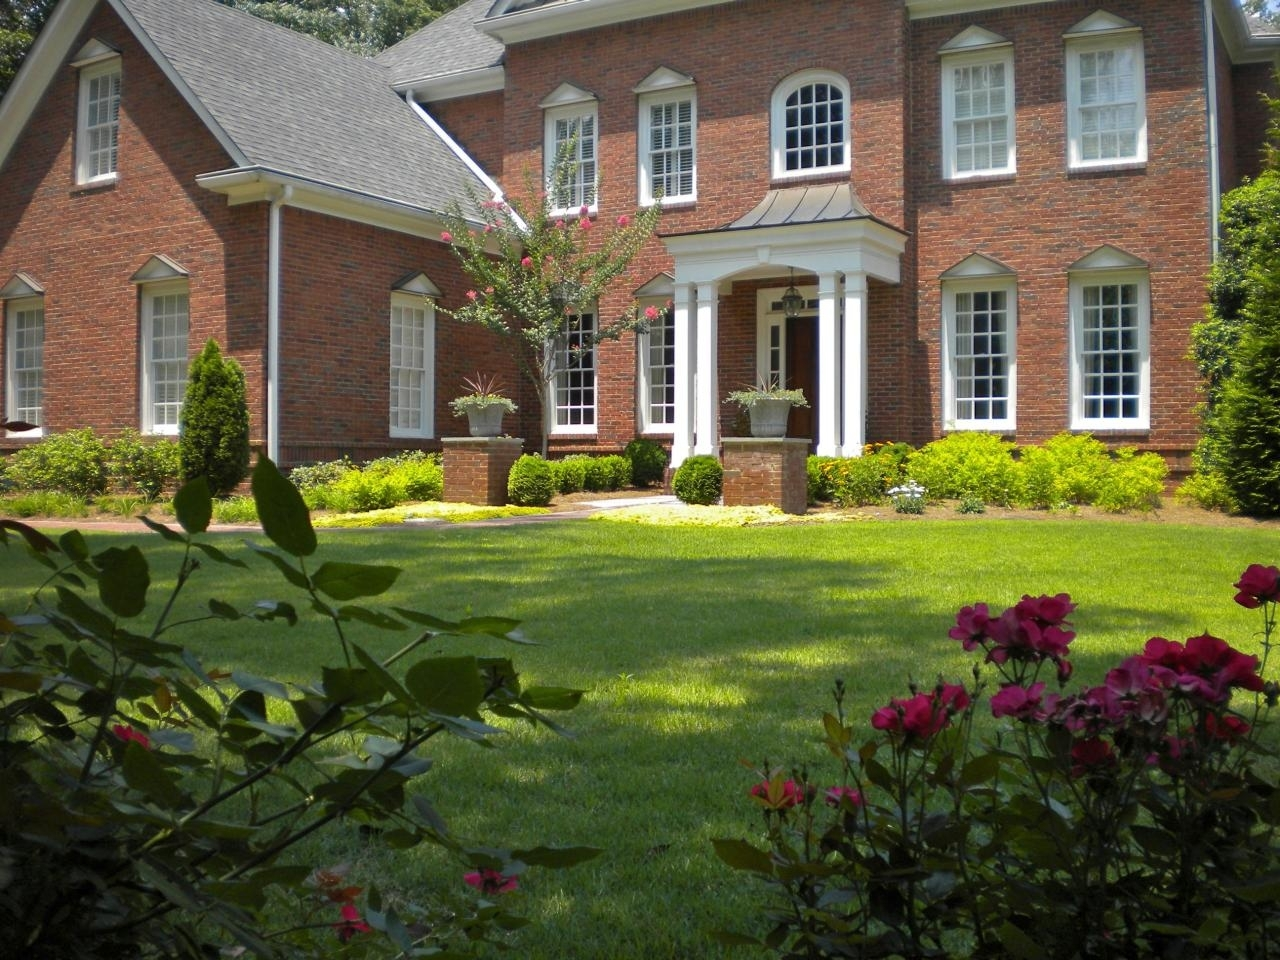 Curb Appeal Landscaping Hgtv Intended For Curb Appeal Landscaping Curb Appeal Landscaping Ideas